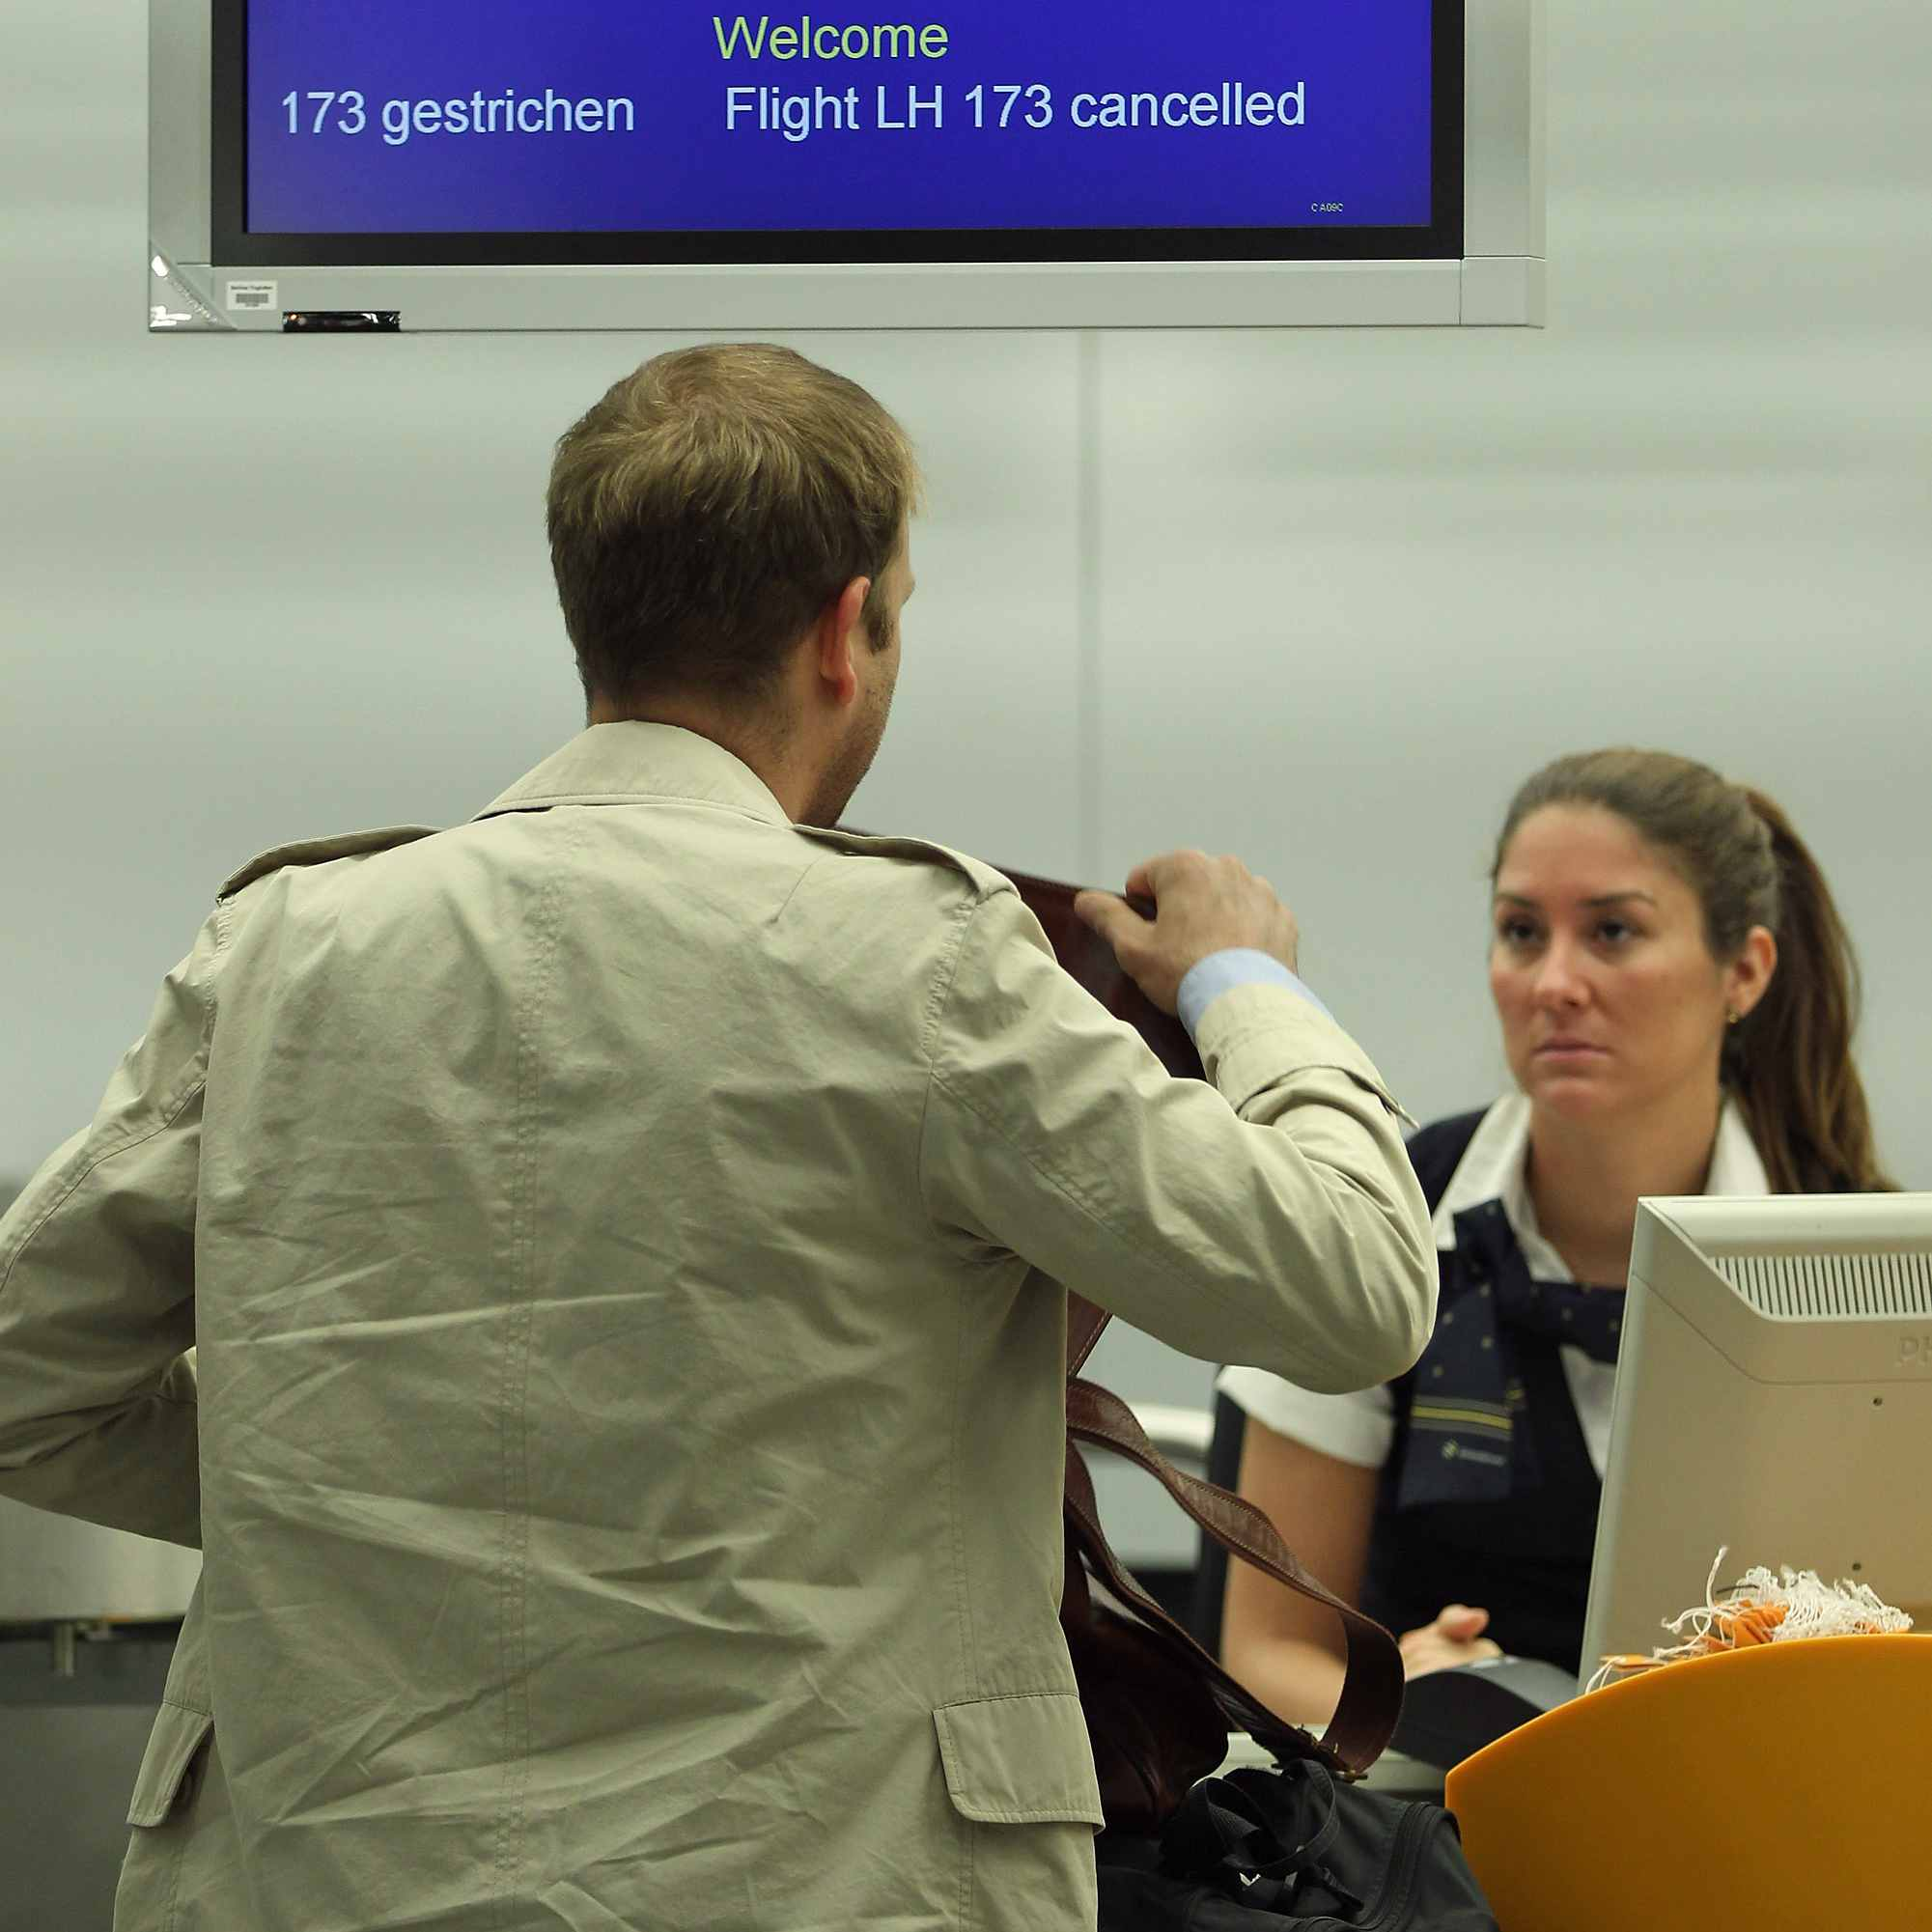 Most of the time, paying the airline change fee is the best policy after a missed flight.